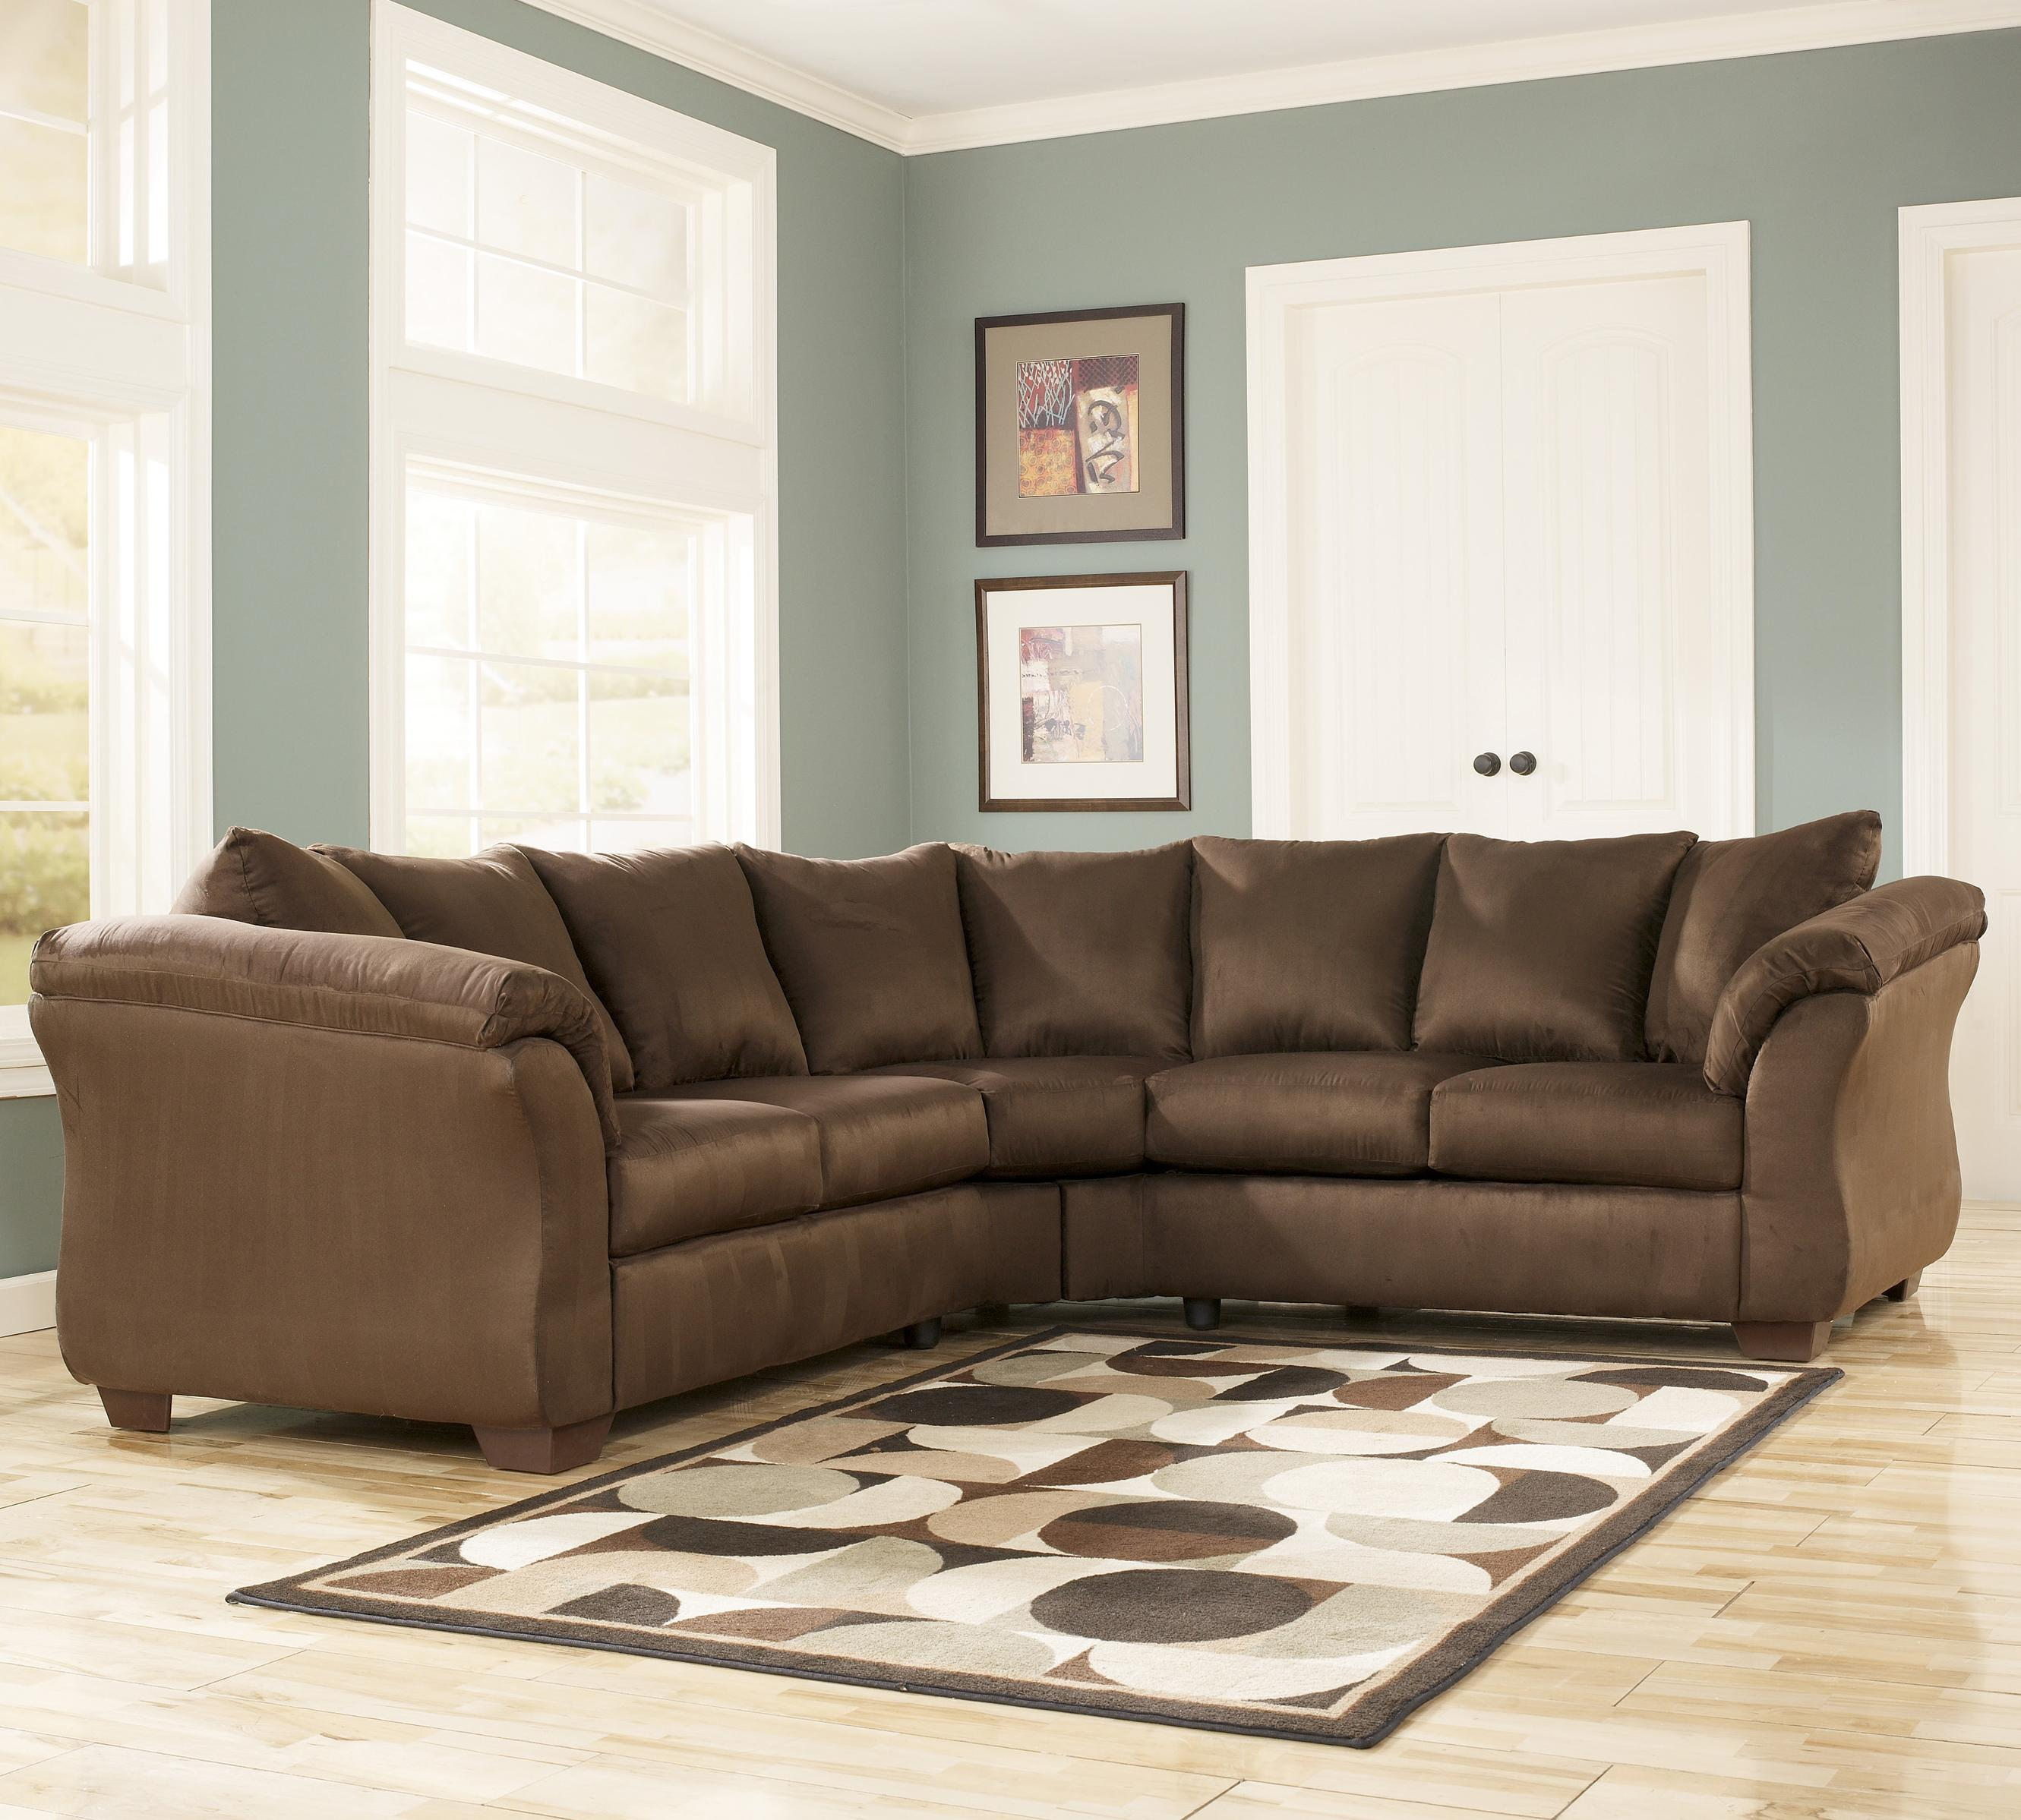 signature design by ashley darcy cafe contemporary sectional sofa with sweeping pillow arms. Black Bedroom Furniture Sets. Home Design Ideas